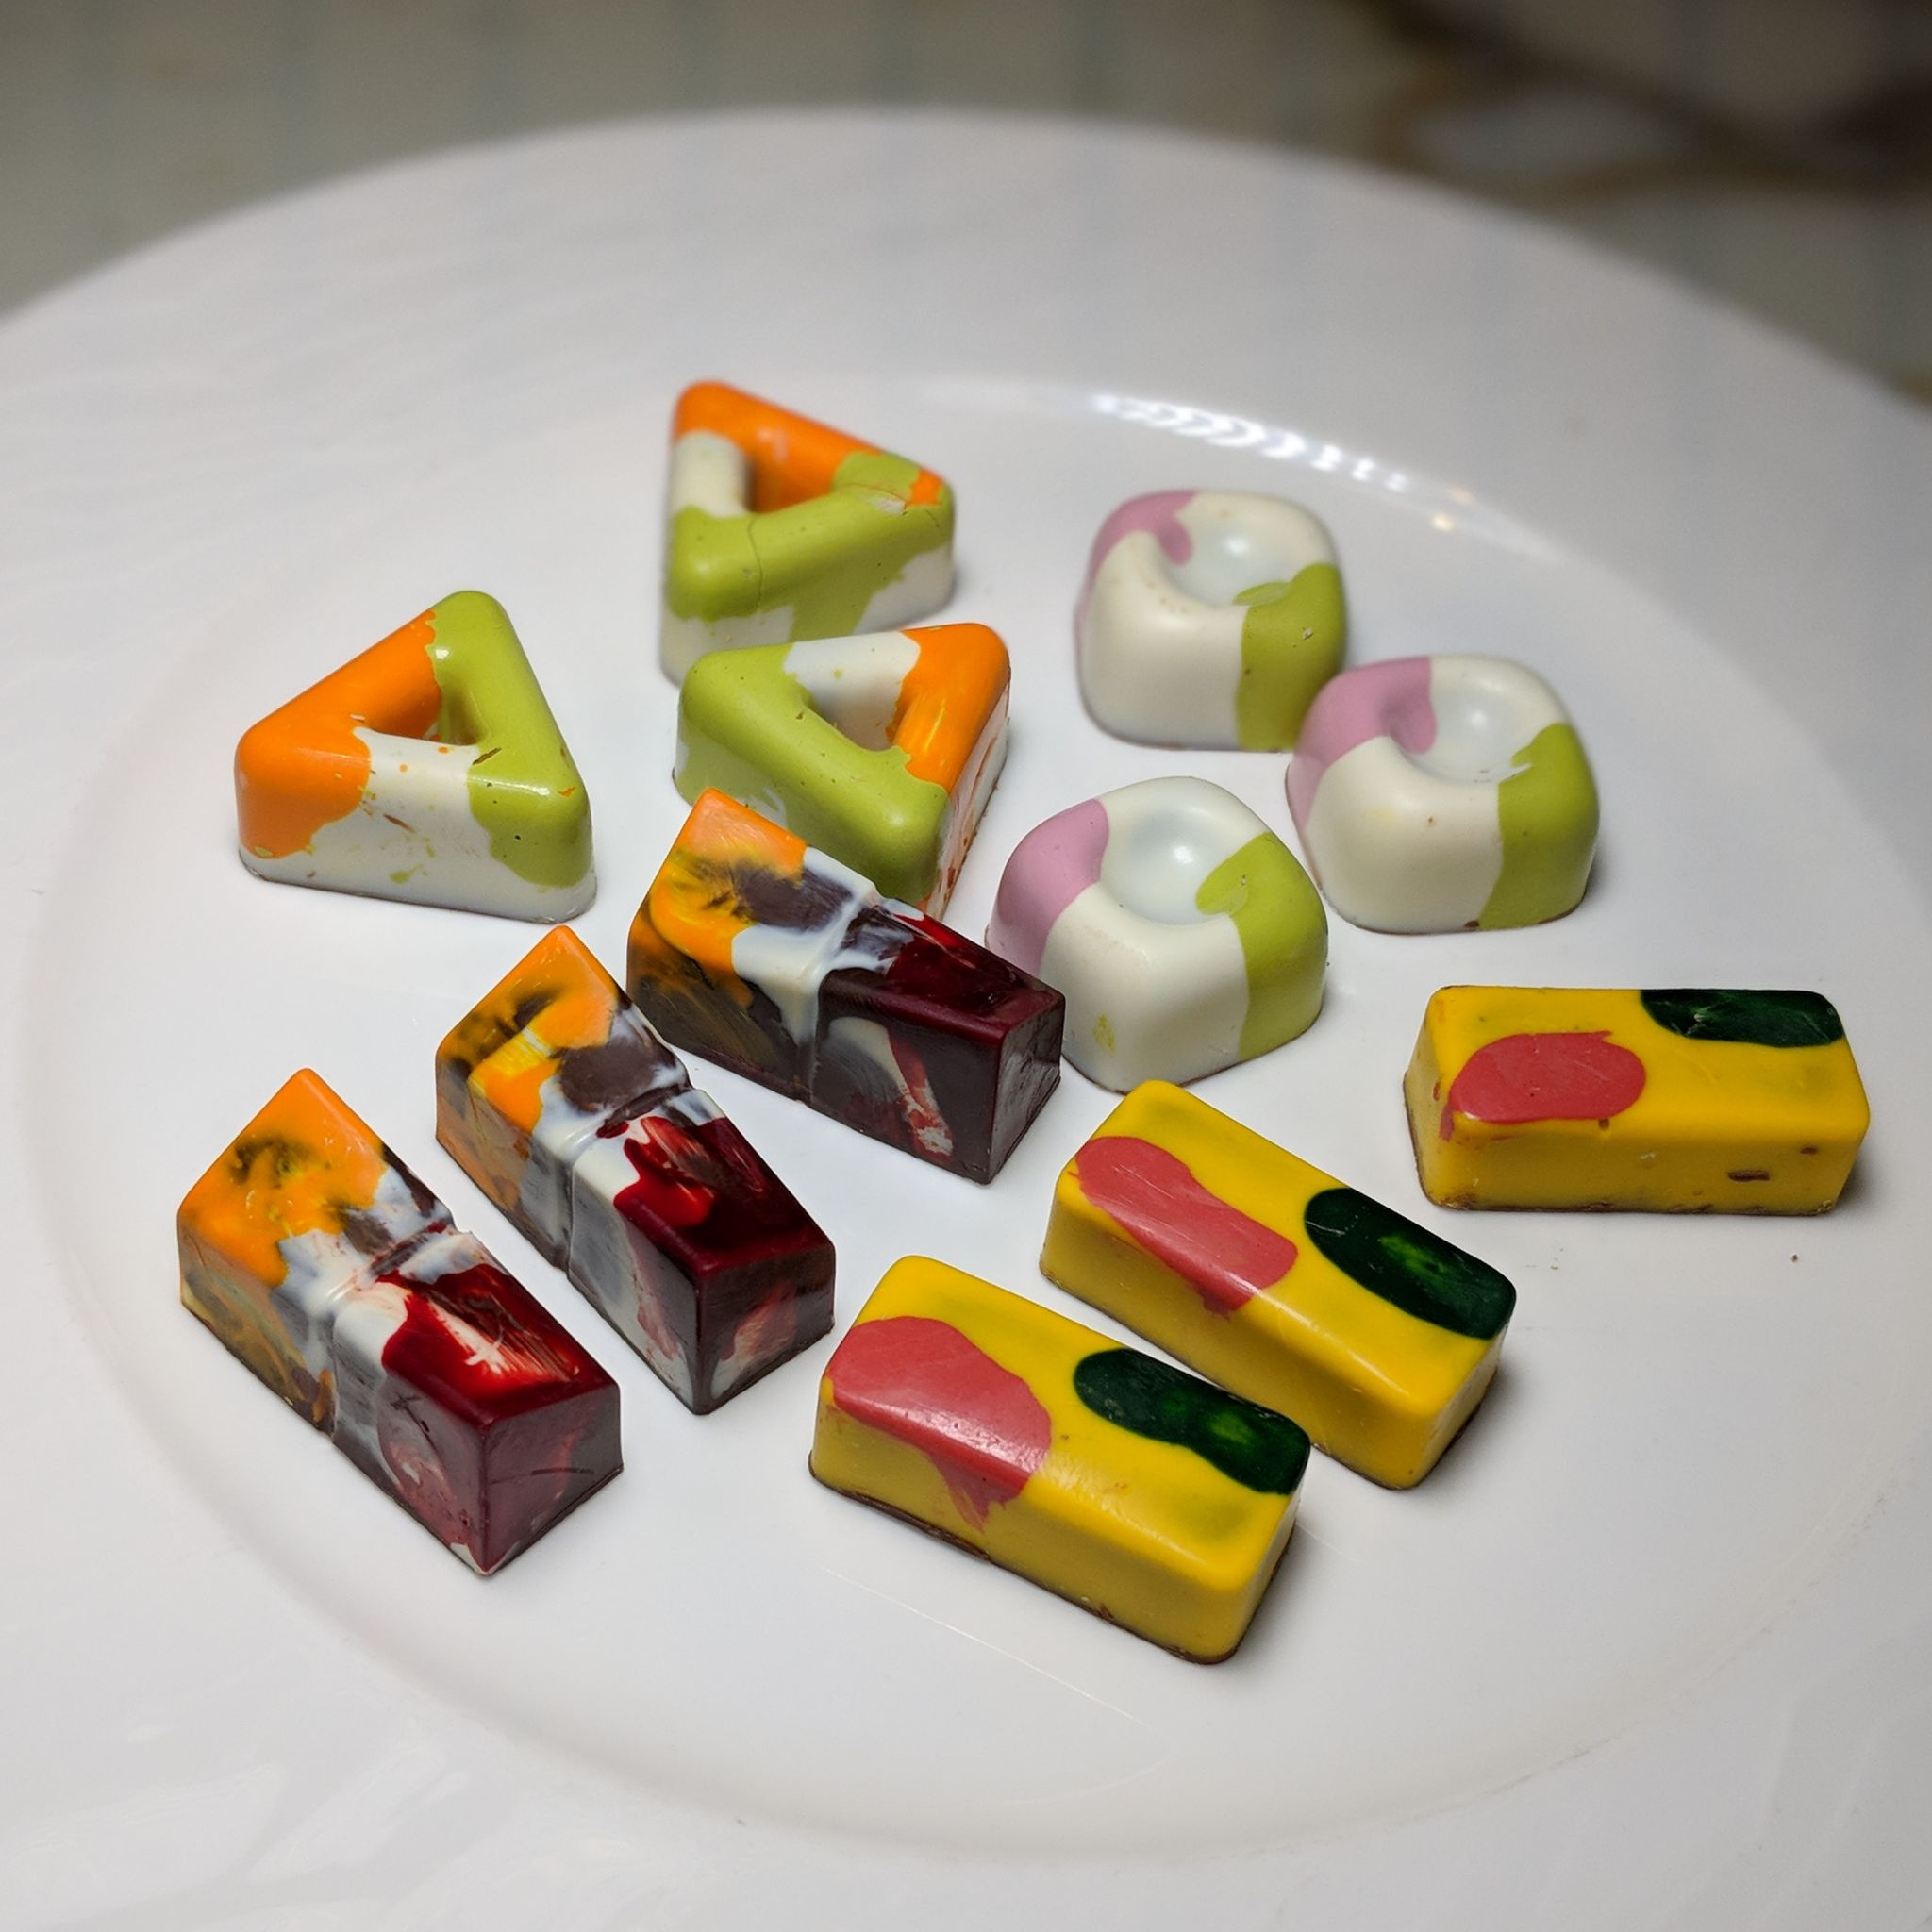 the ritz-carlton, millenia singapore ritz-carlton club chocolates pralines and cordials